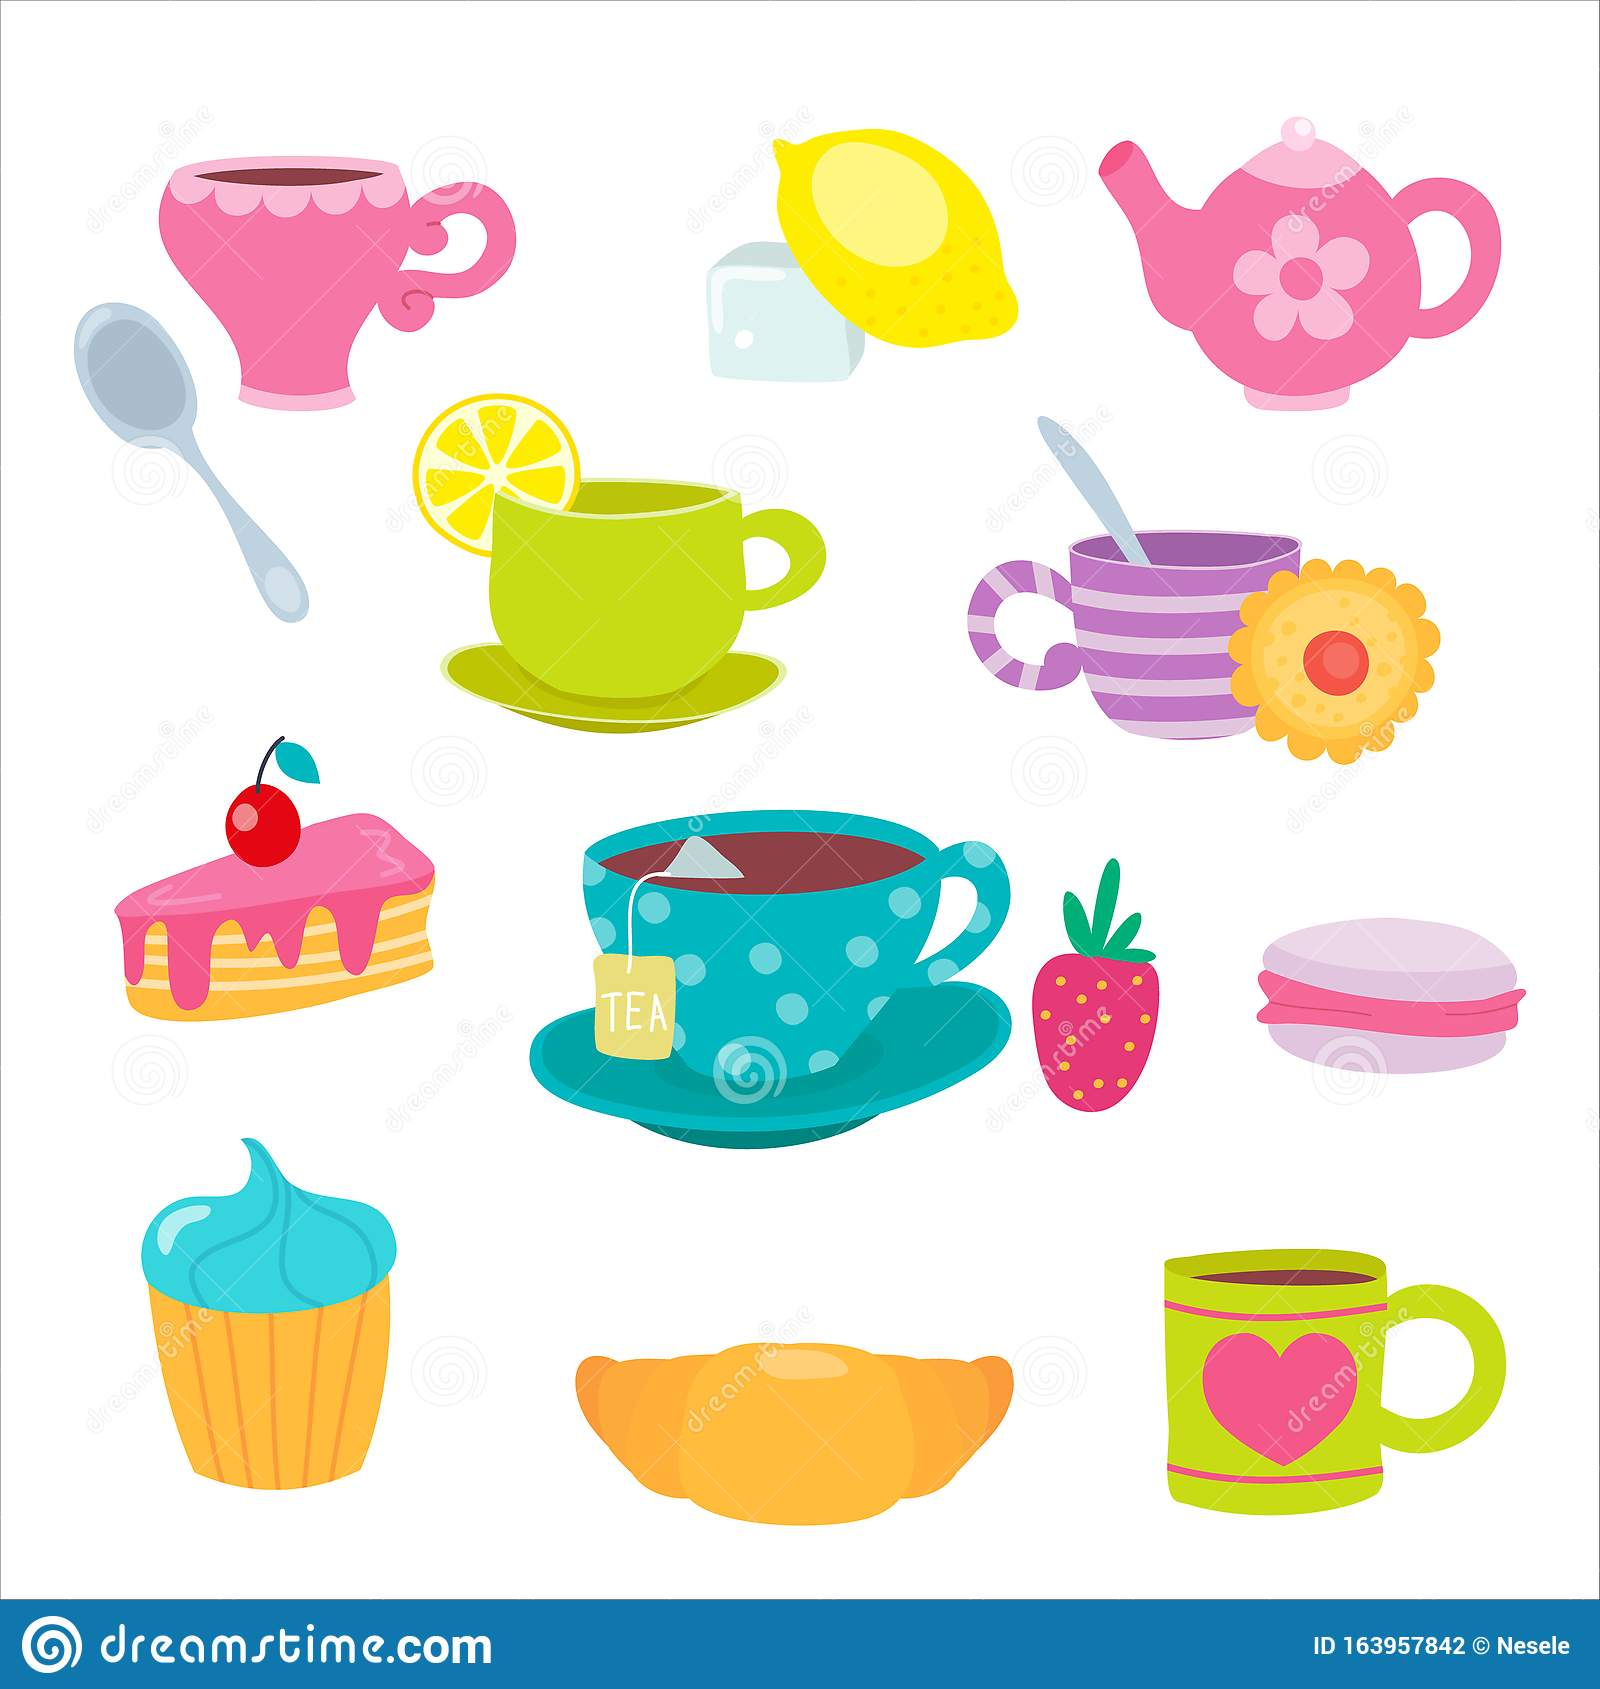 Funny Cartoon Tea Cup Cute Mugs And Sweets Teacups And Teapot Cake And Macaroon Vector Illustration Cartoon Flat Stock Vector Illustration Of Cake Funny 163957842